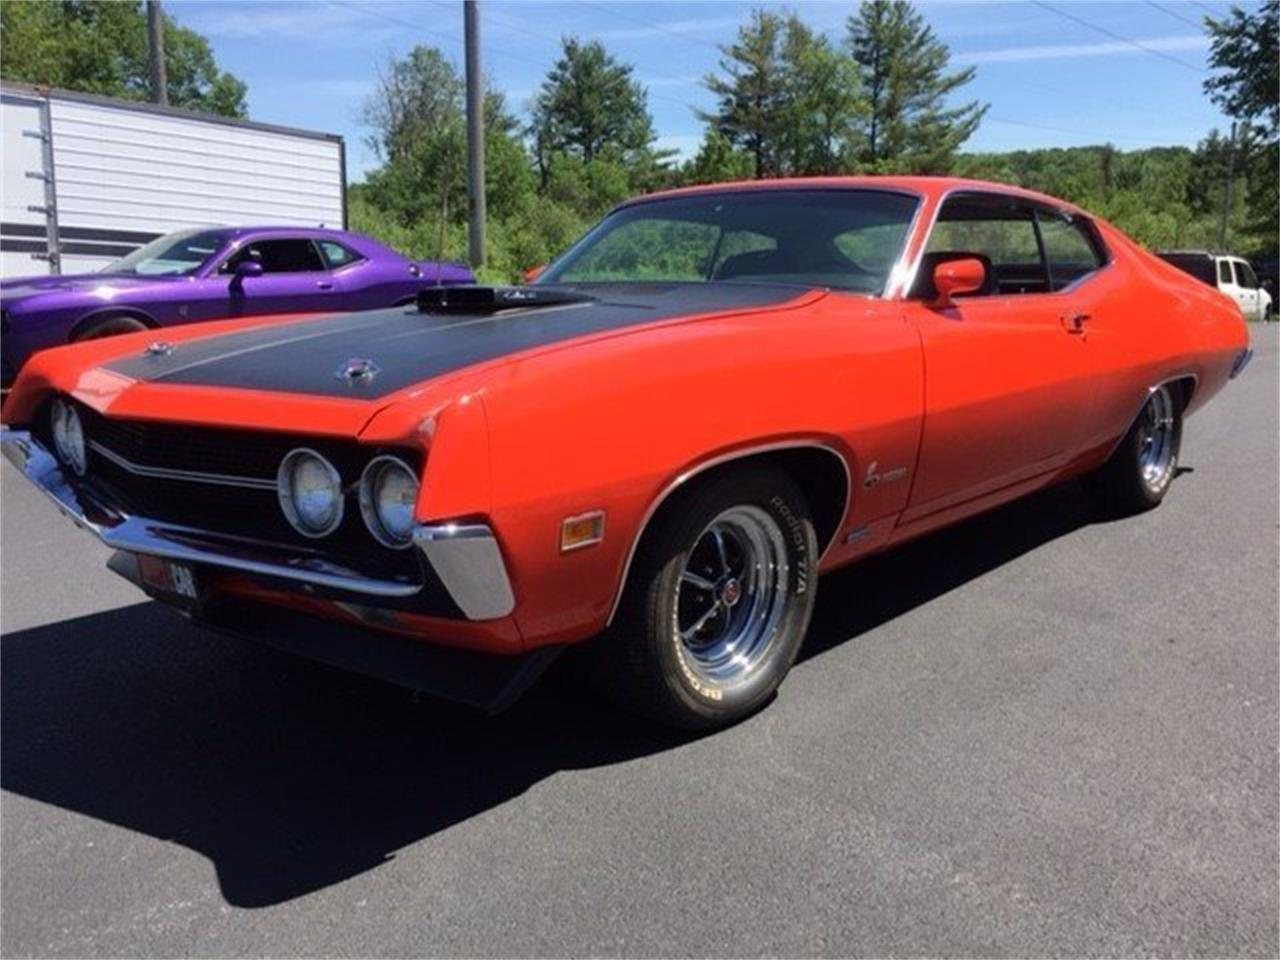 Large picture of 70 torino nsy5